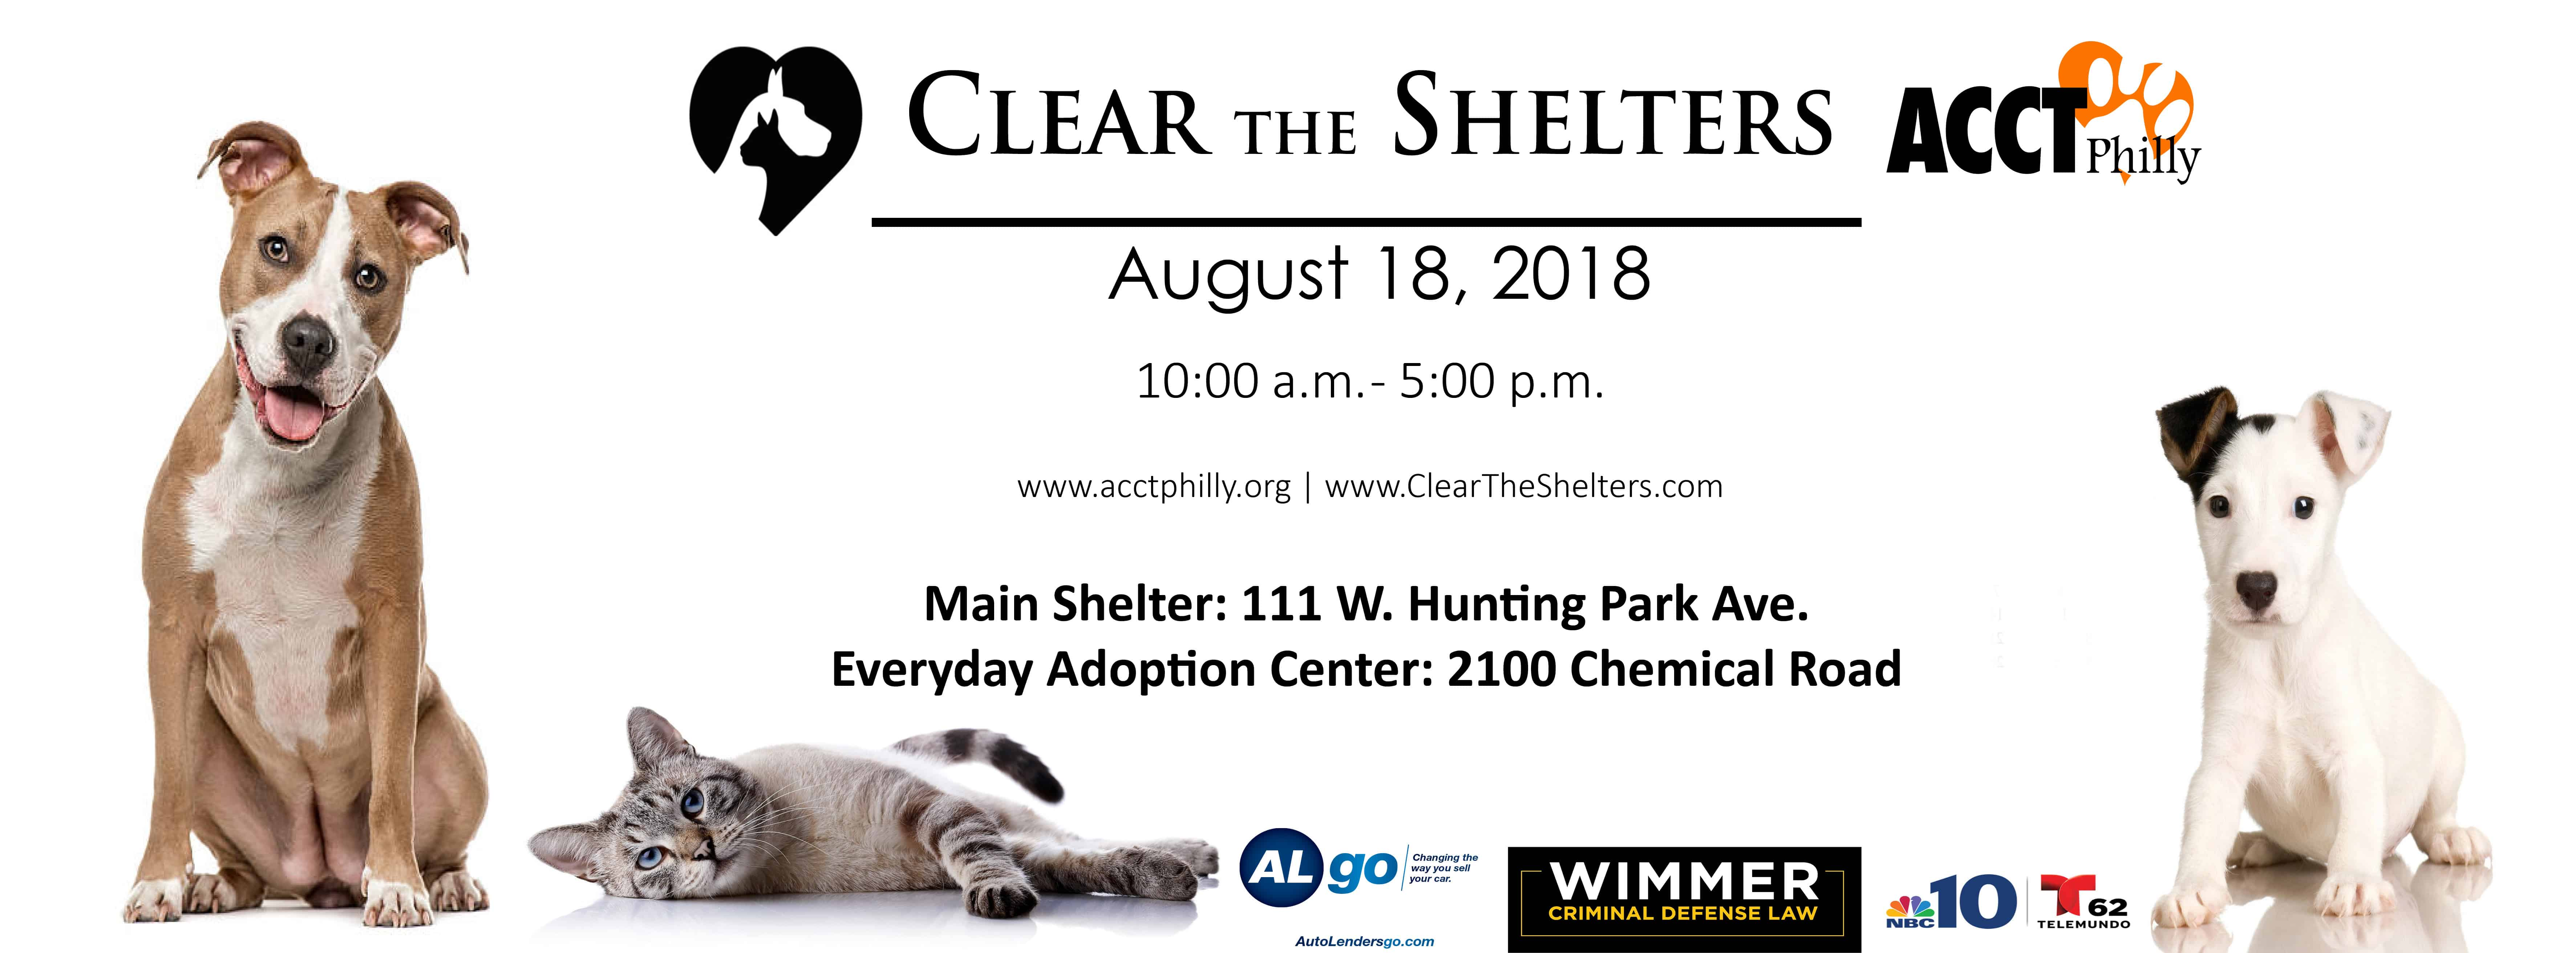 Clear The Shelters 2018   ACCT Philly